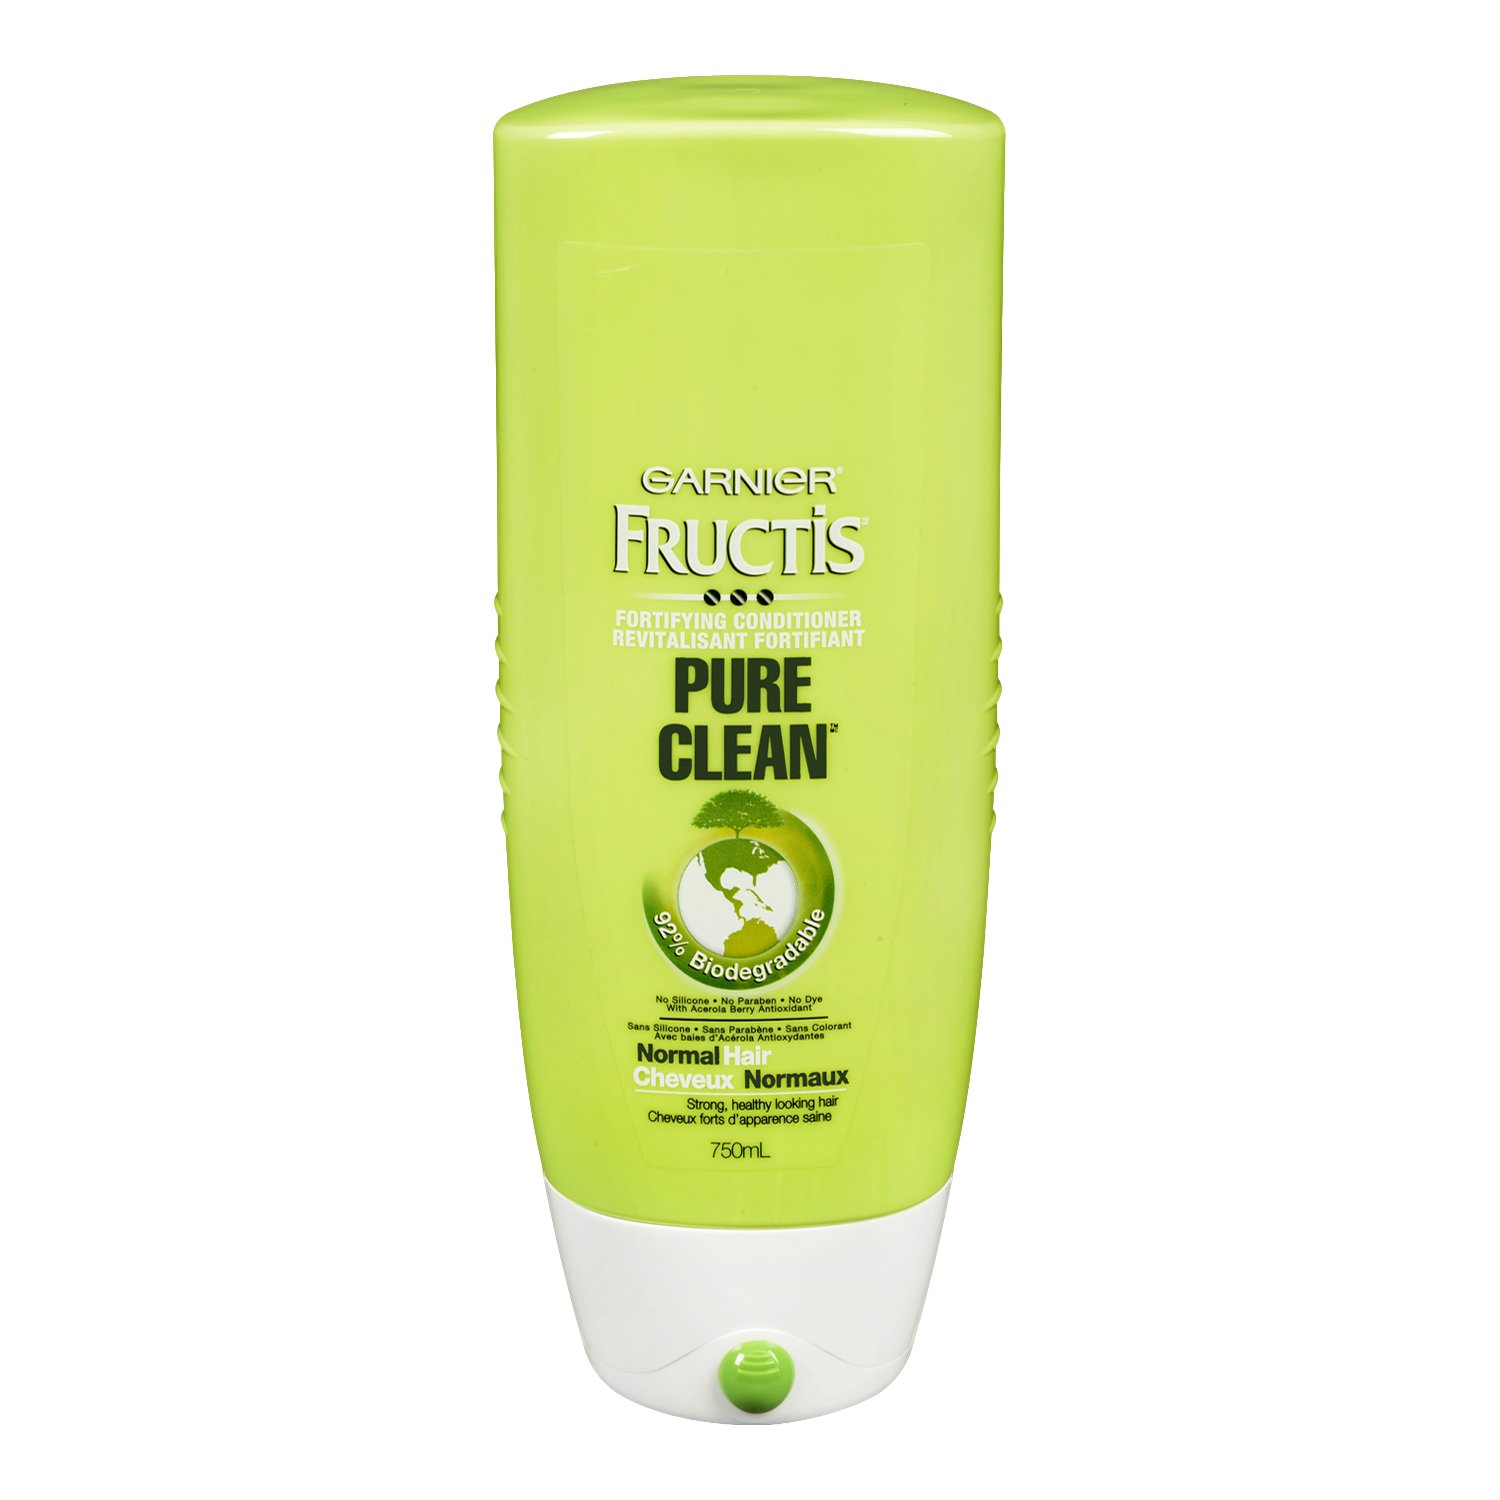 Garnier Fructis Pure Clean 2-in-1 Shampoo and Conditioner